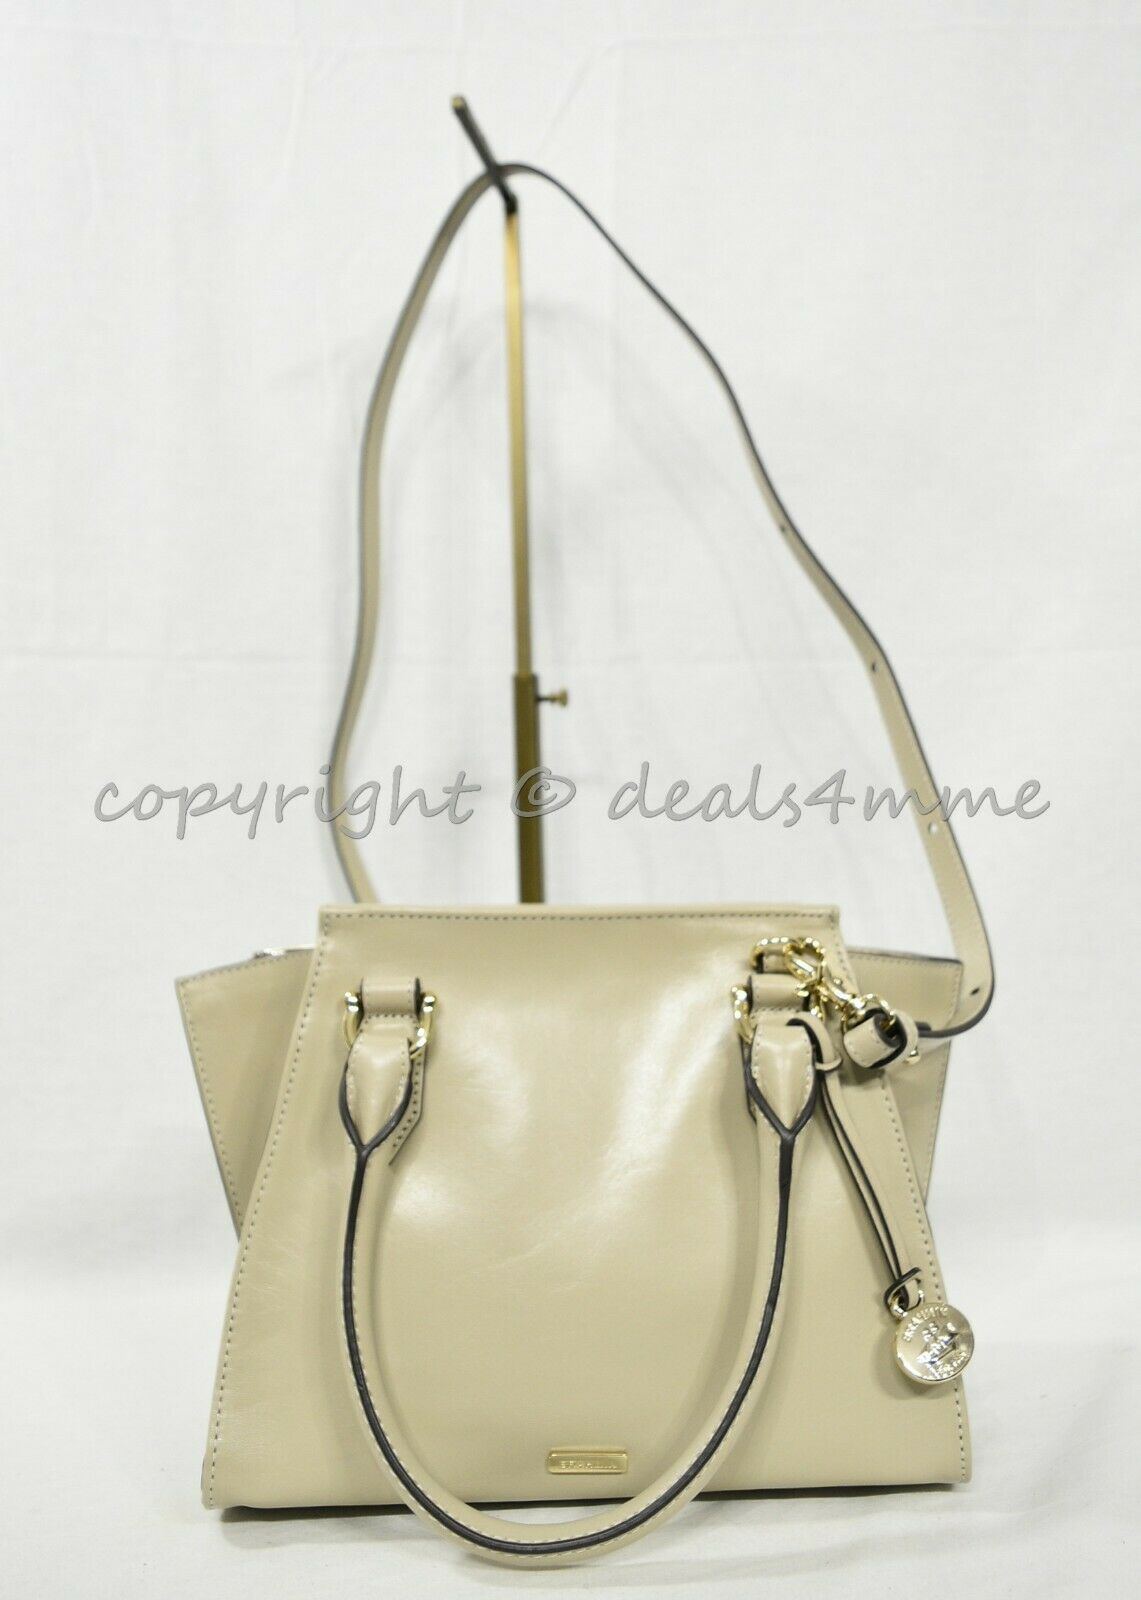 NWT Brahmin Mini Priscilla Smooth Leather Satchel/Shoulder Bag in Sand Topsail image 3